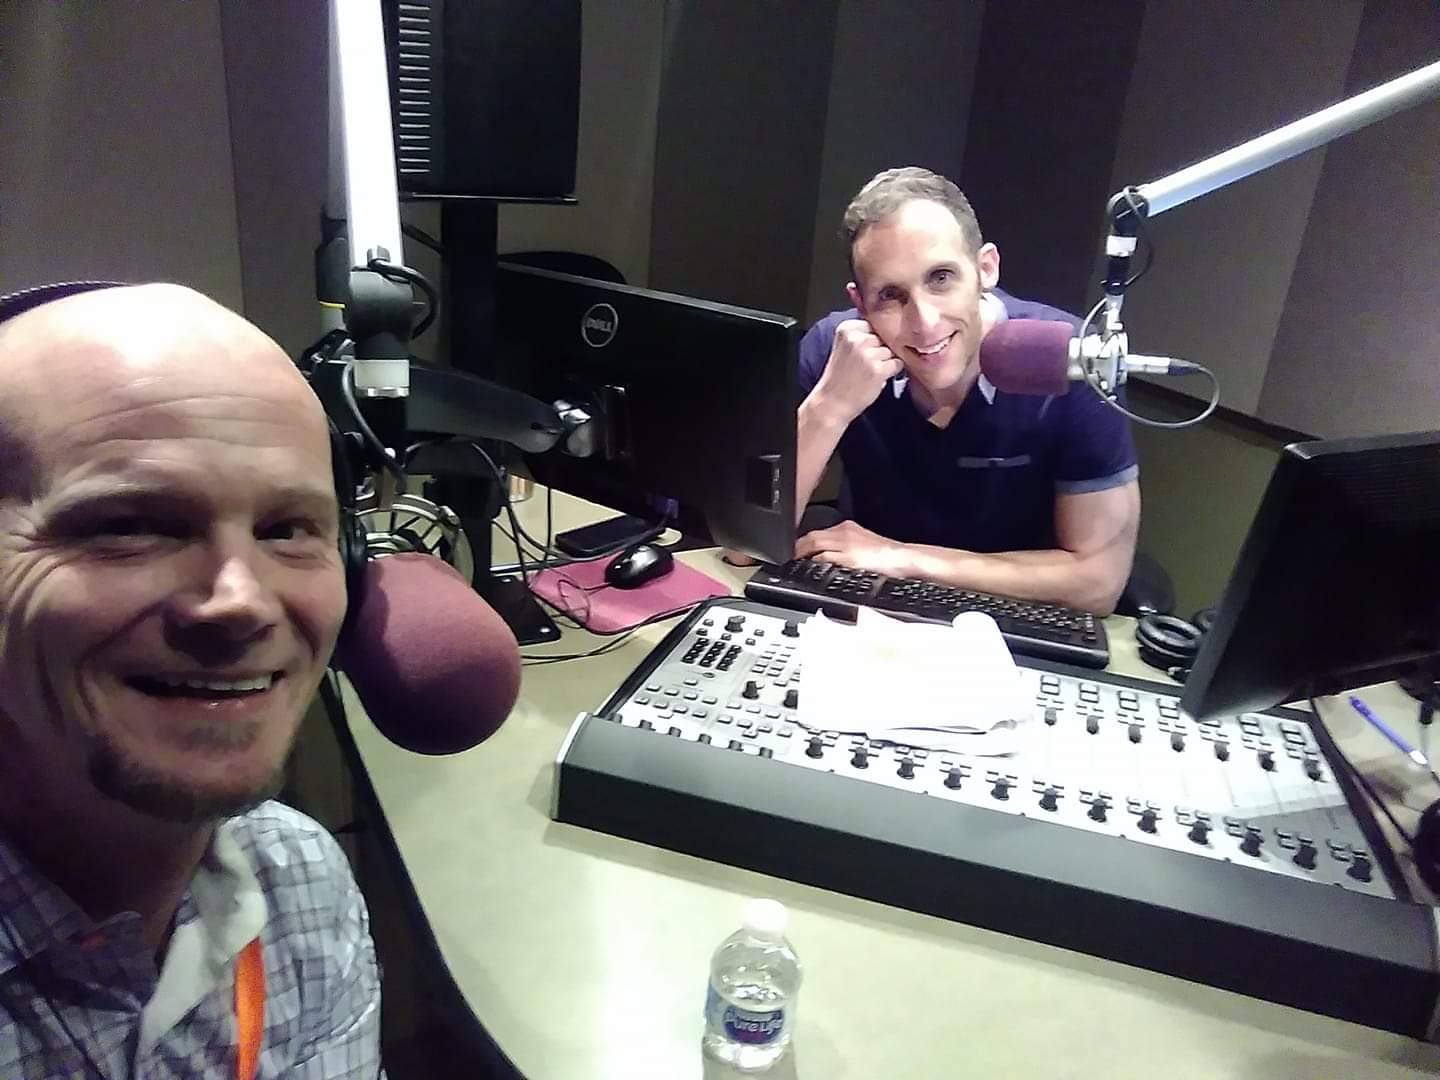 Darin Valdez with Colorado Matters host Ryan Warner at CPR Studios during a break. Valdez works at Sobriety House in Denver as an addiction counselor, after overcoming addiction himself.